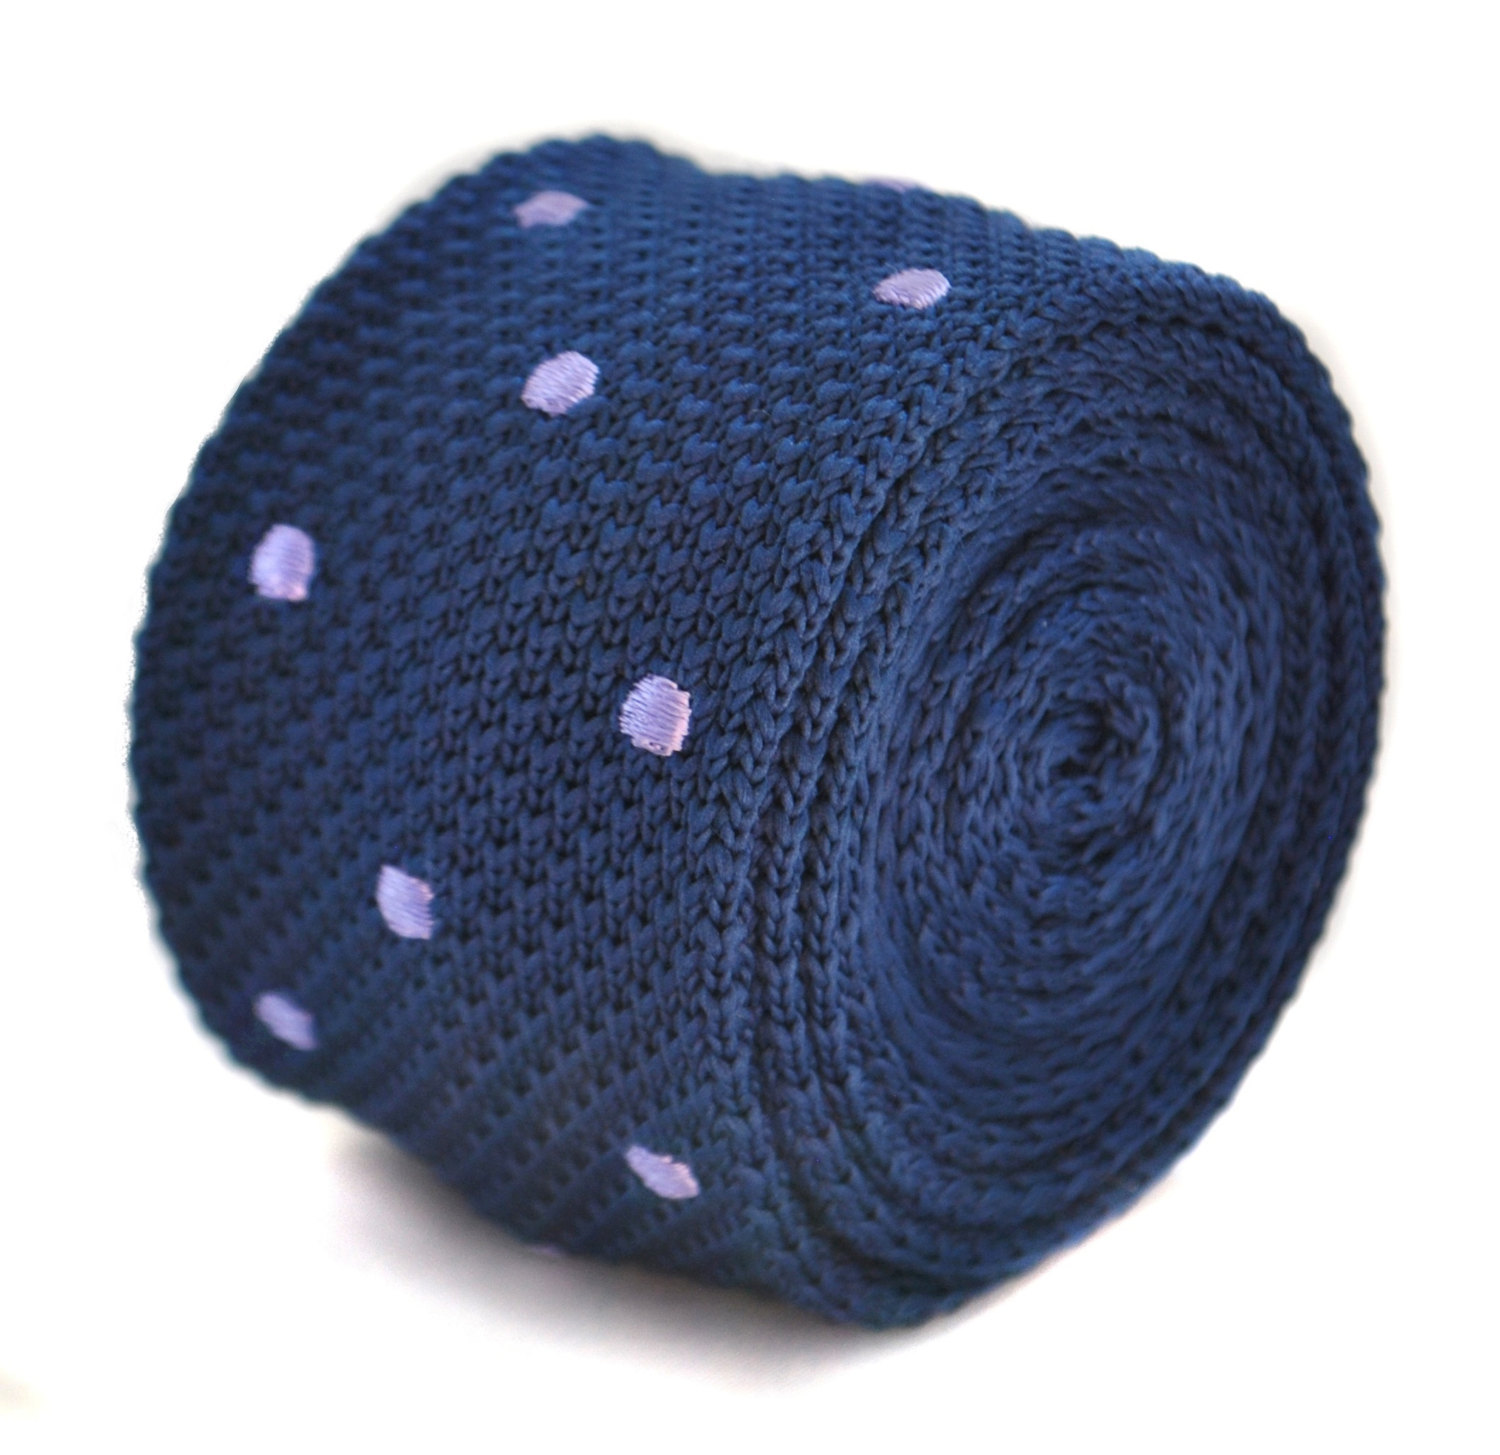 navy blue skinny knitted tie with purple polka spots by Frederick Thomas FT2032